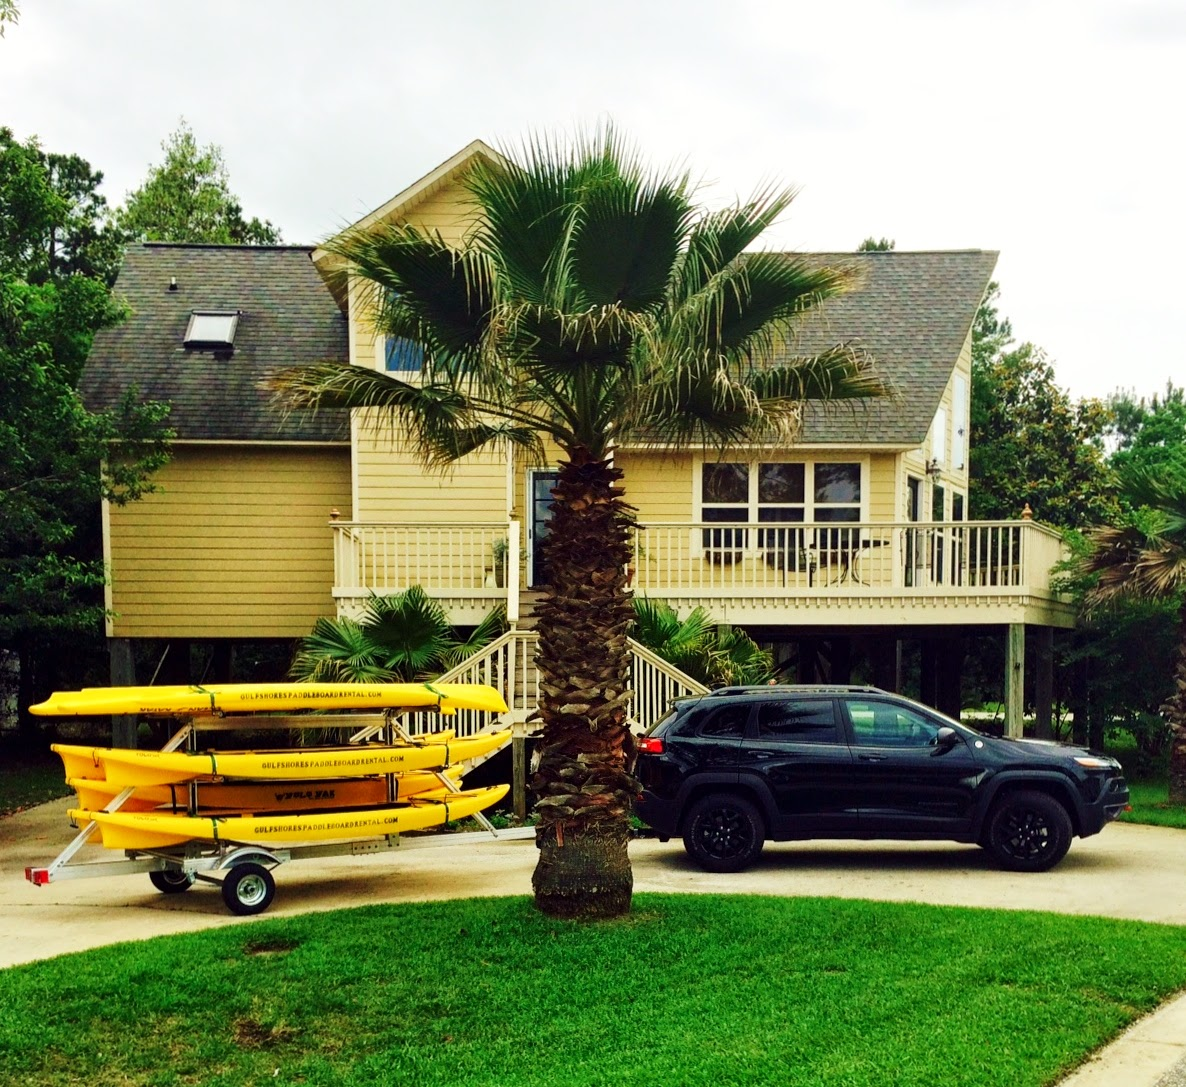 where to rent a paddleboard in Gulf Shores, paddle board rental, kayak rental, daily and weekly rentals